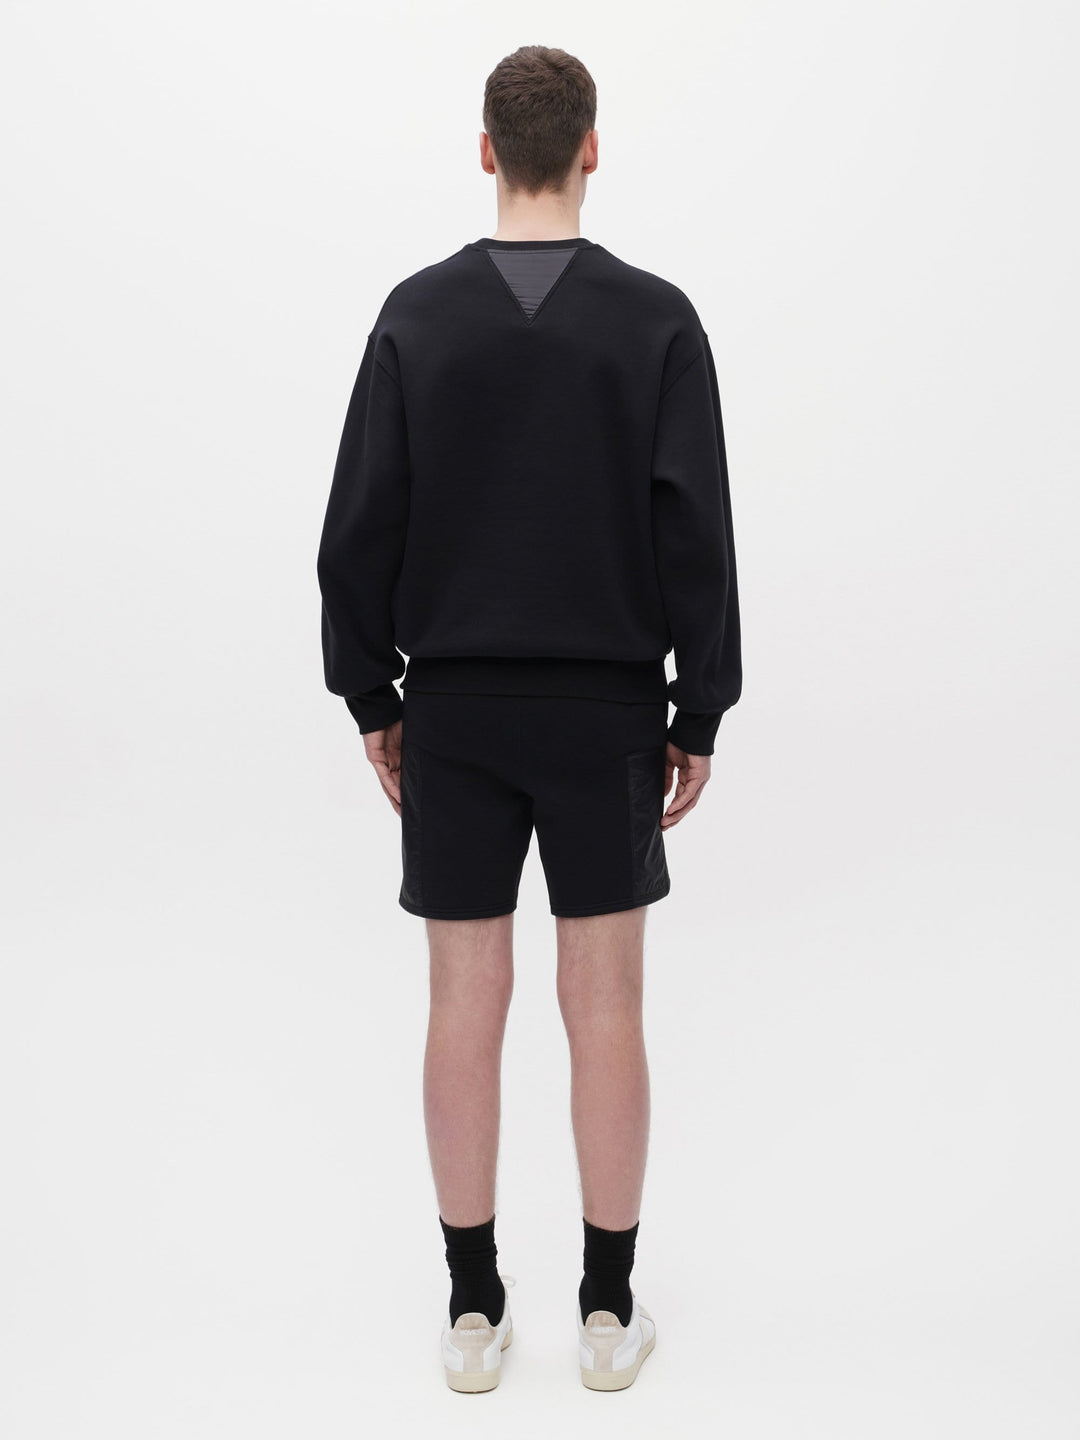 Unisex Pocket Sweatshirt Black